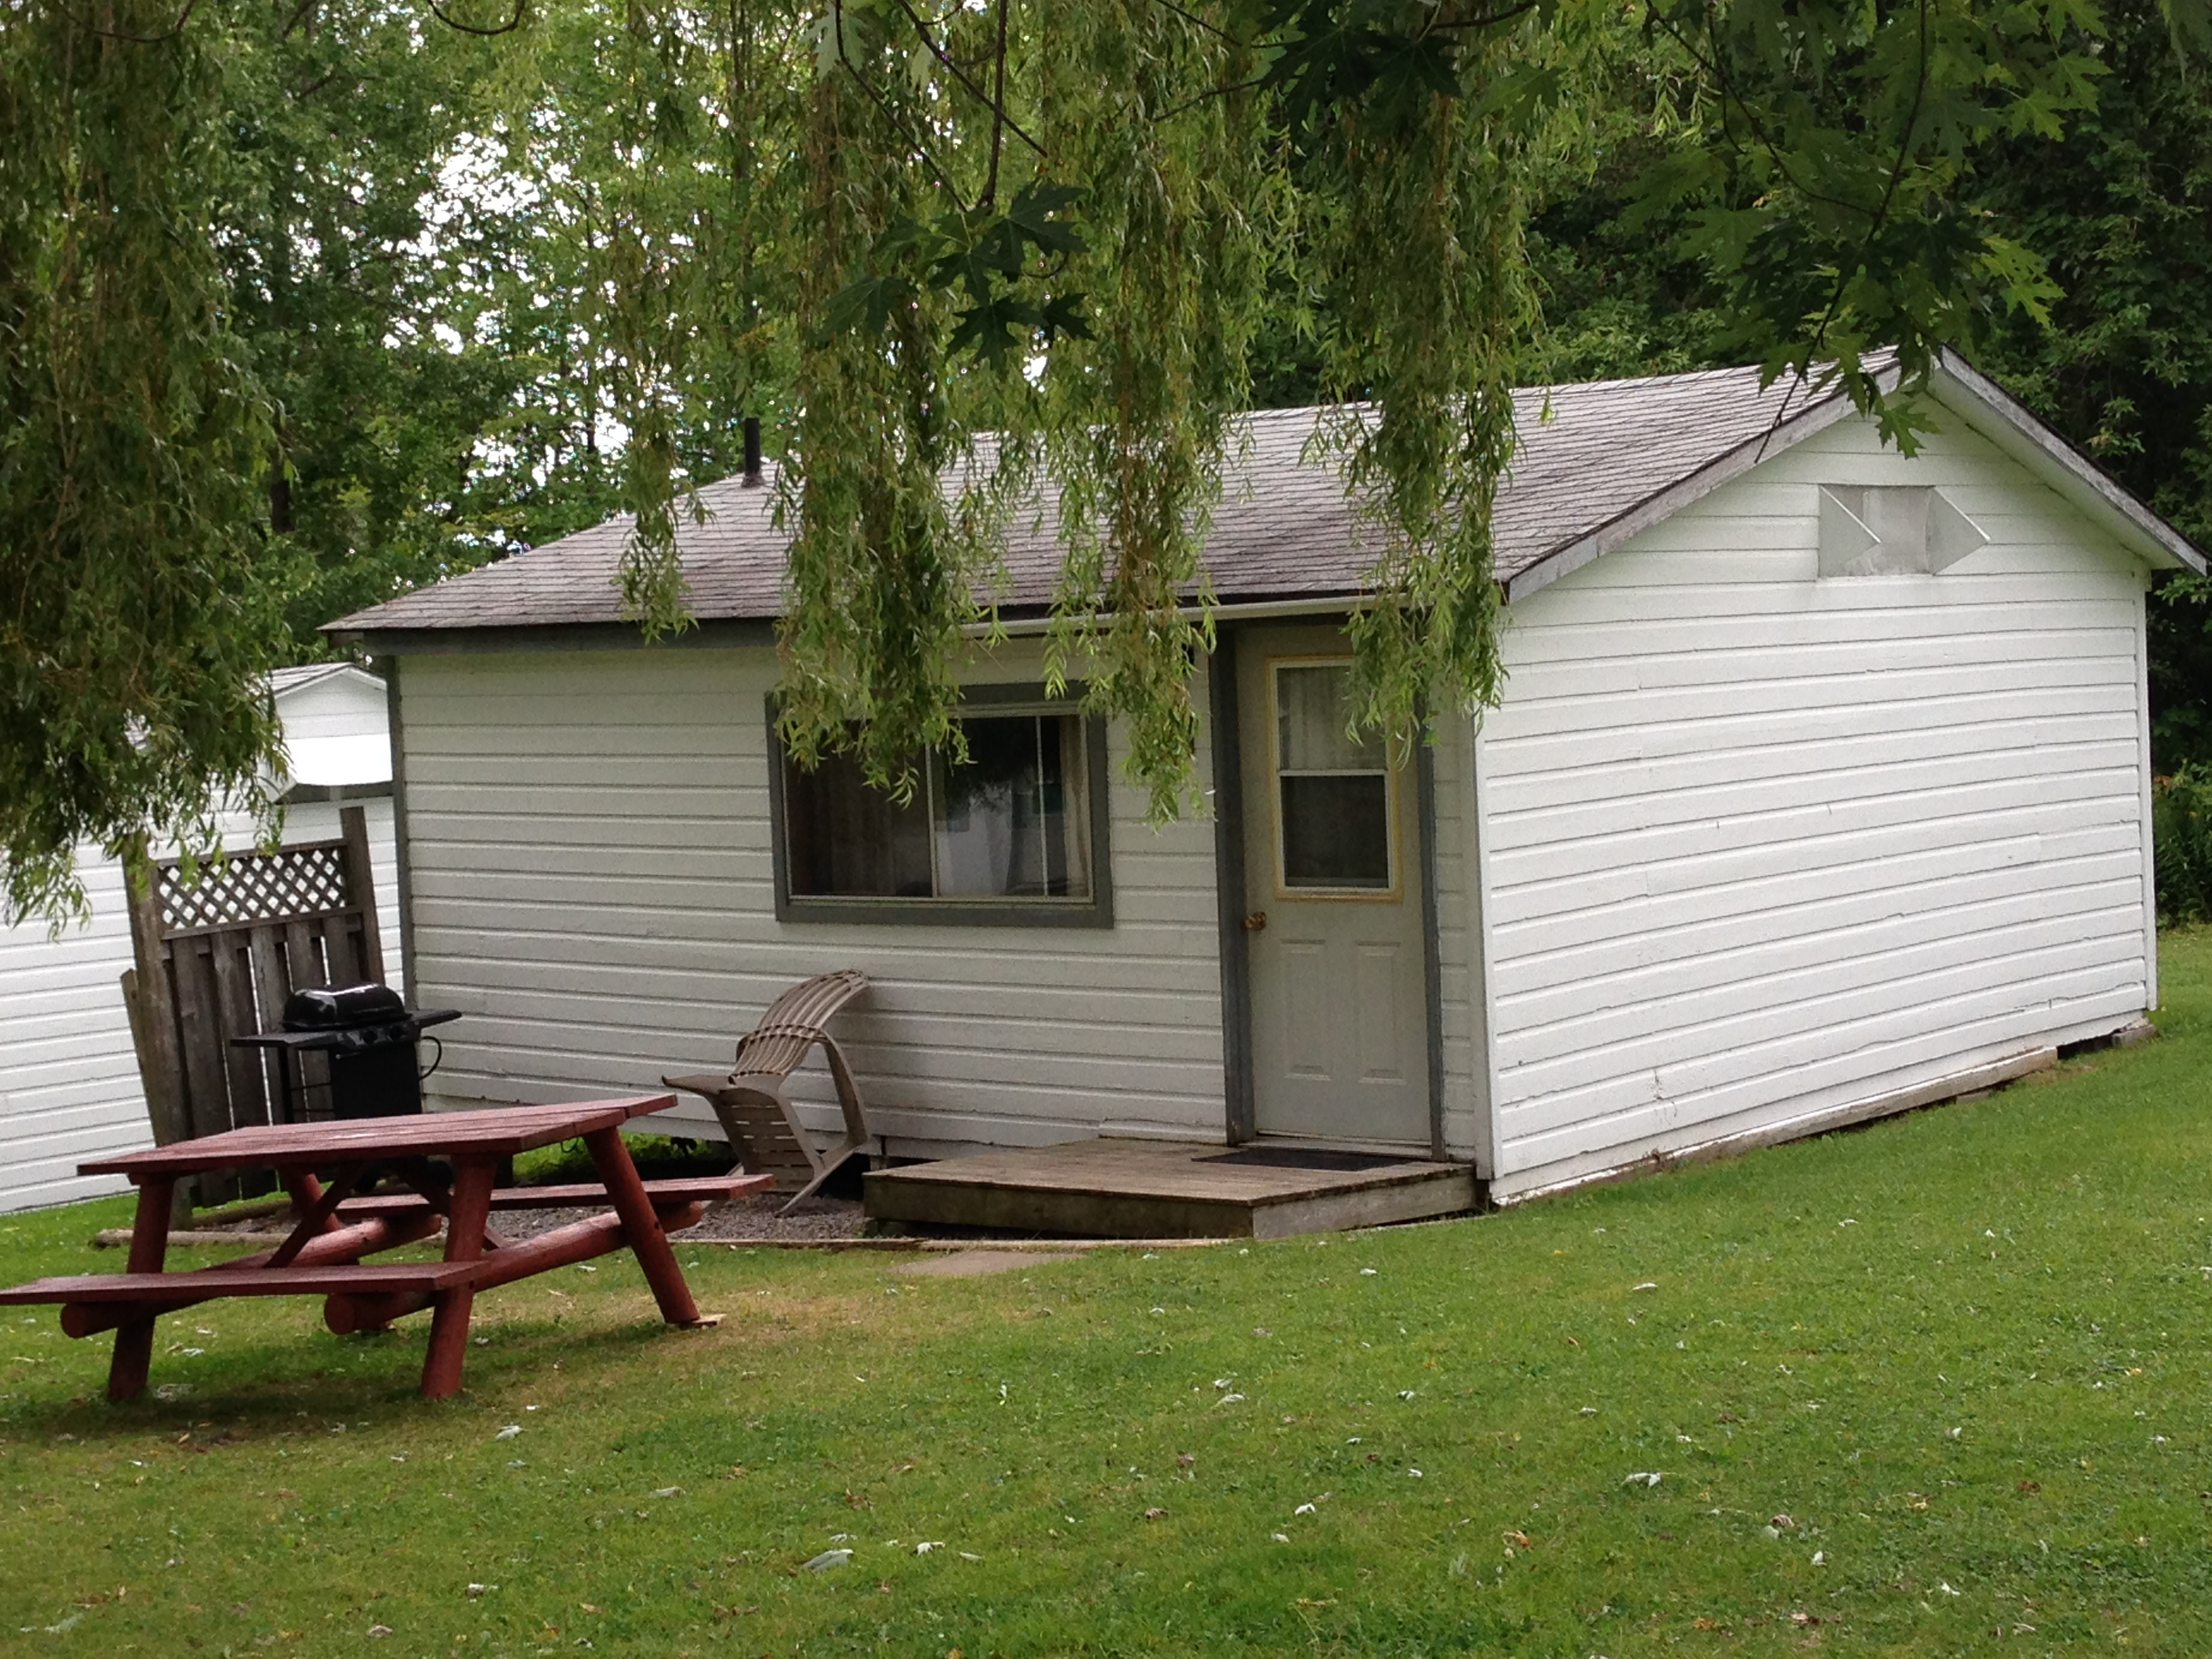 curtis point cottages on rice lake curtis point cottages on rh curtispointcottages com